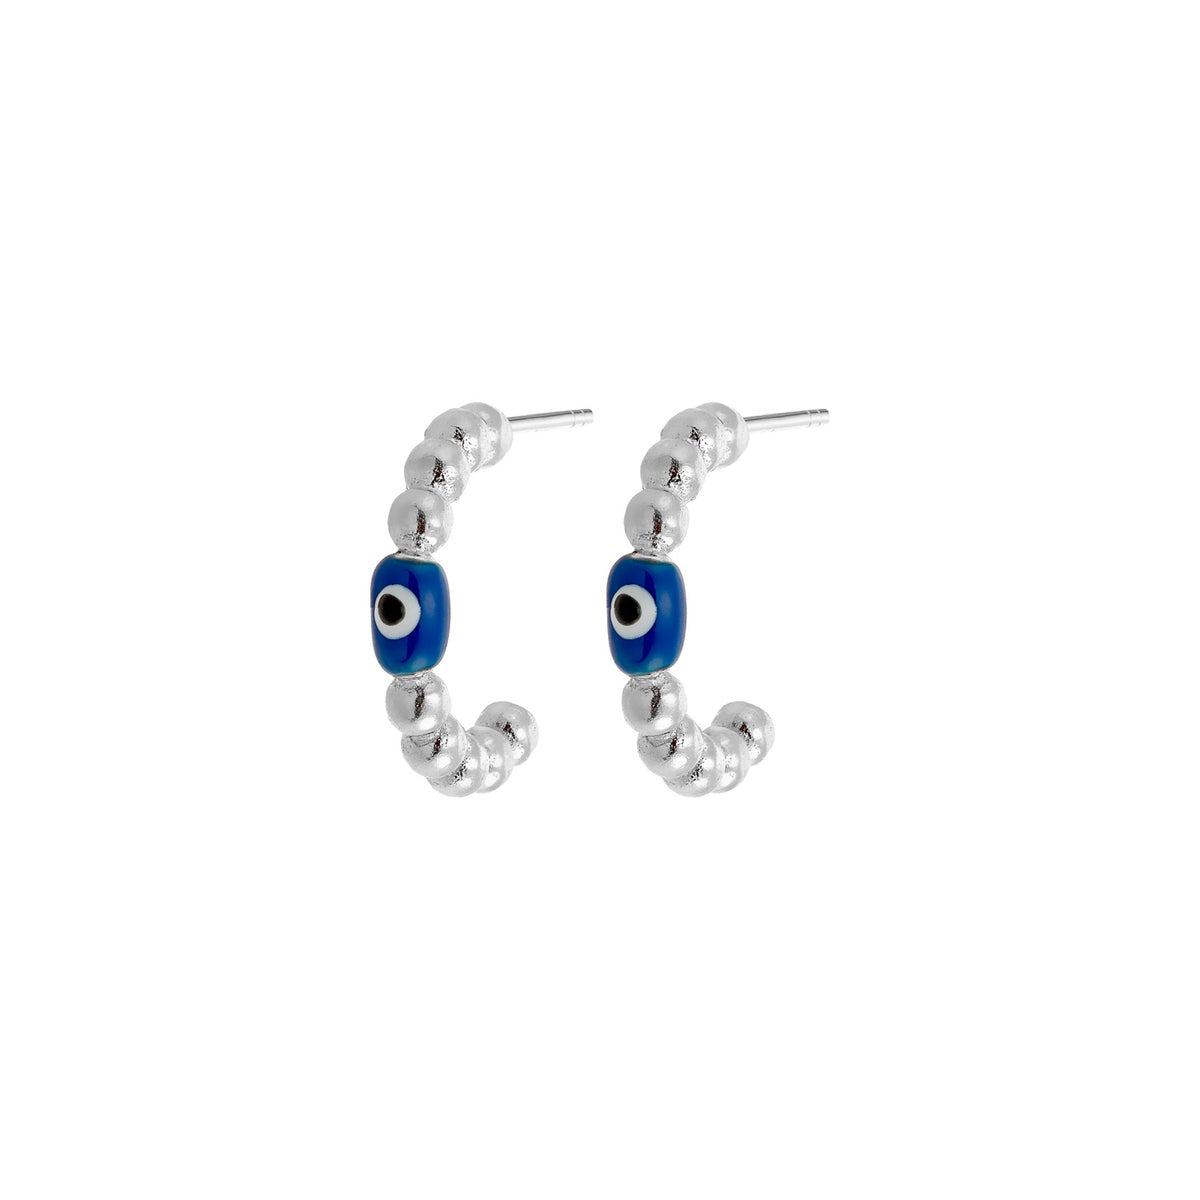 MATI | Bubble Hoops | Blue Enamel | White Rhodium Plated 925 Silver